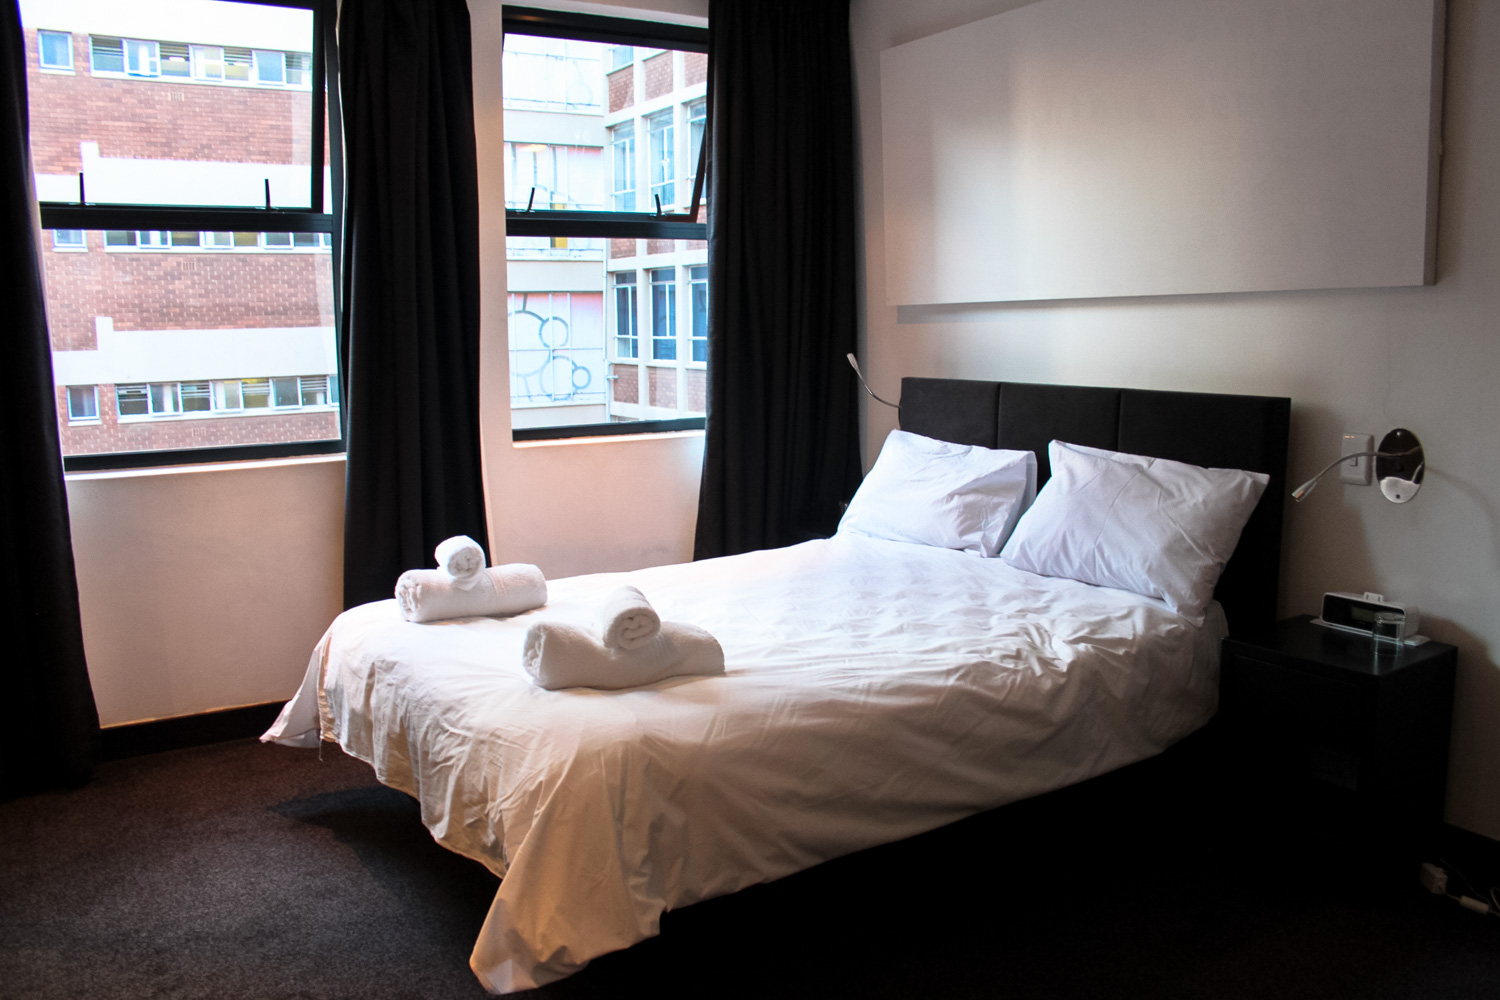 Review: Once in Joburg - Double Room